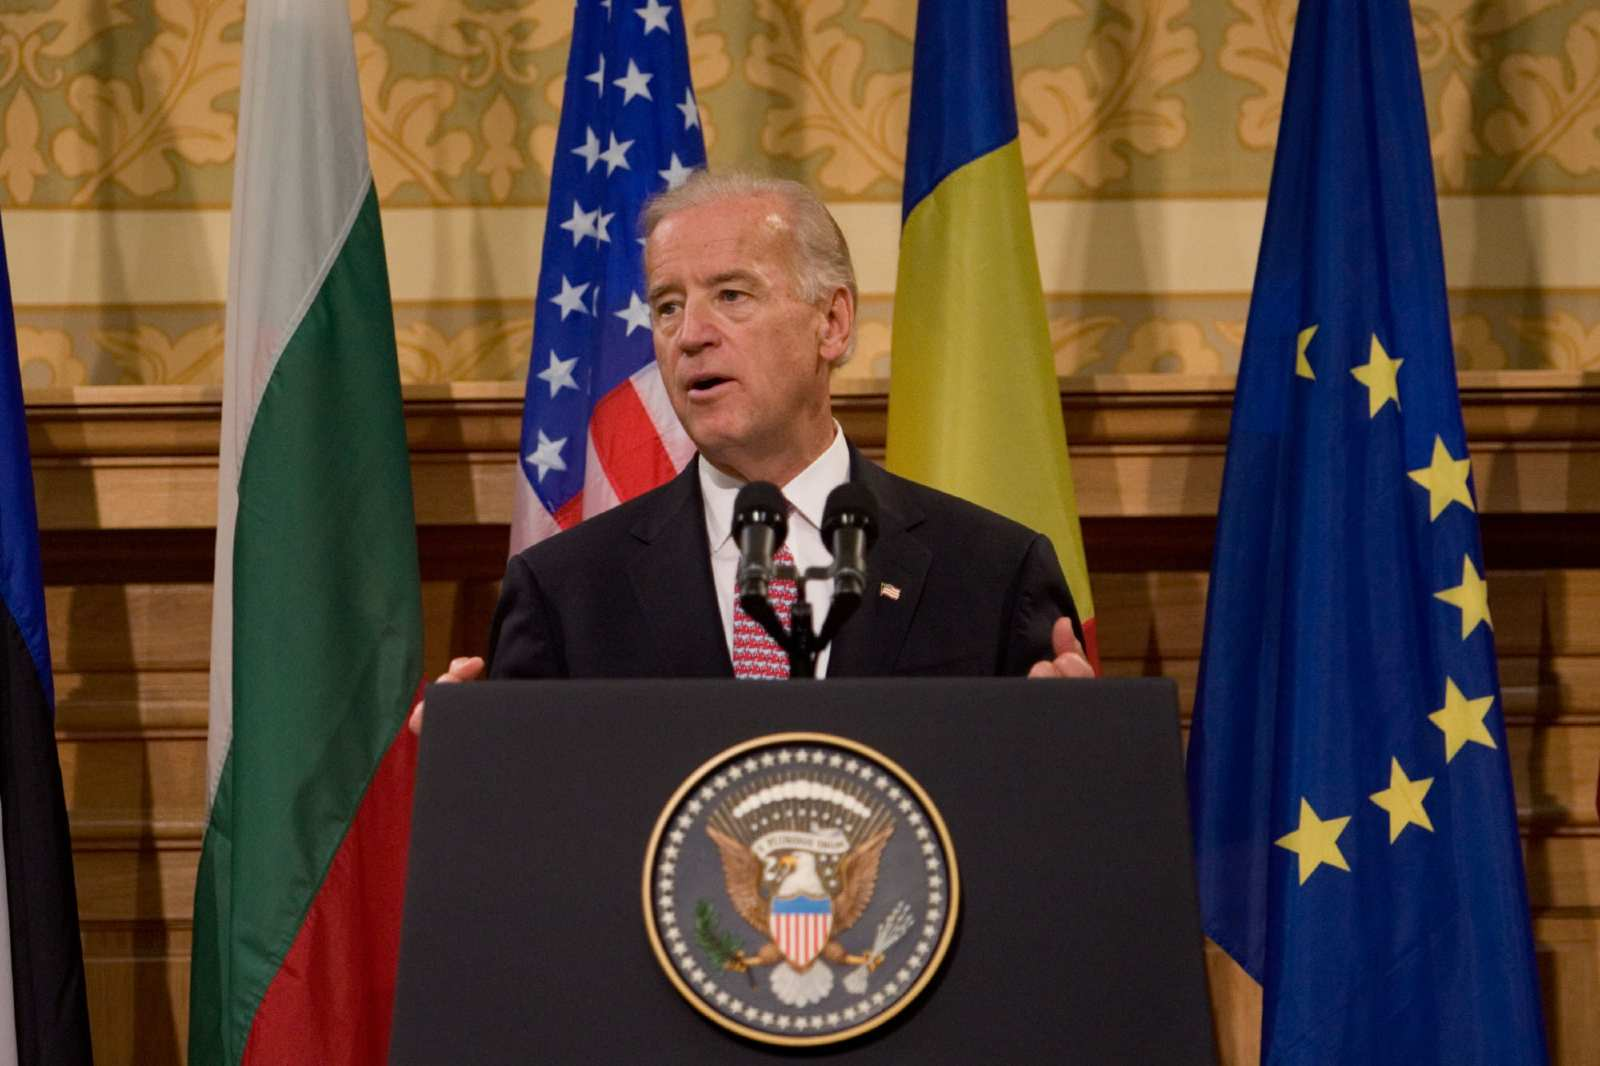 Vice President Joe Biden speaks at the Central University Library Bucharest, in Bucharest, Romania. October 22, 2009. (Official White House Photo by David Lienemann)